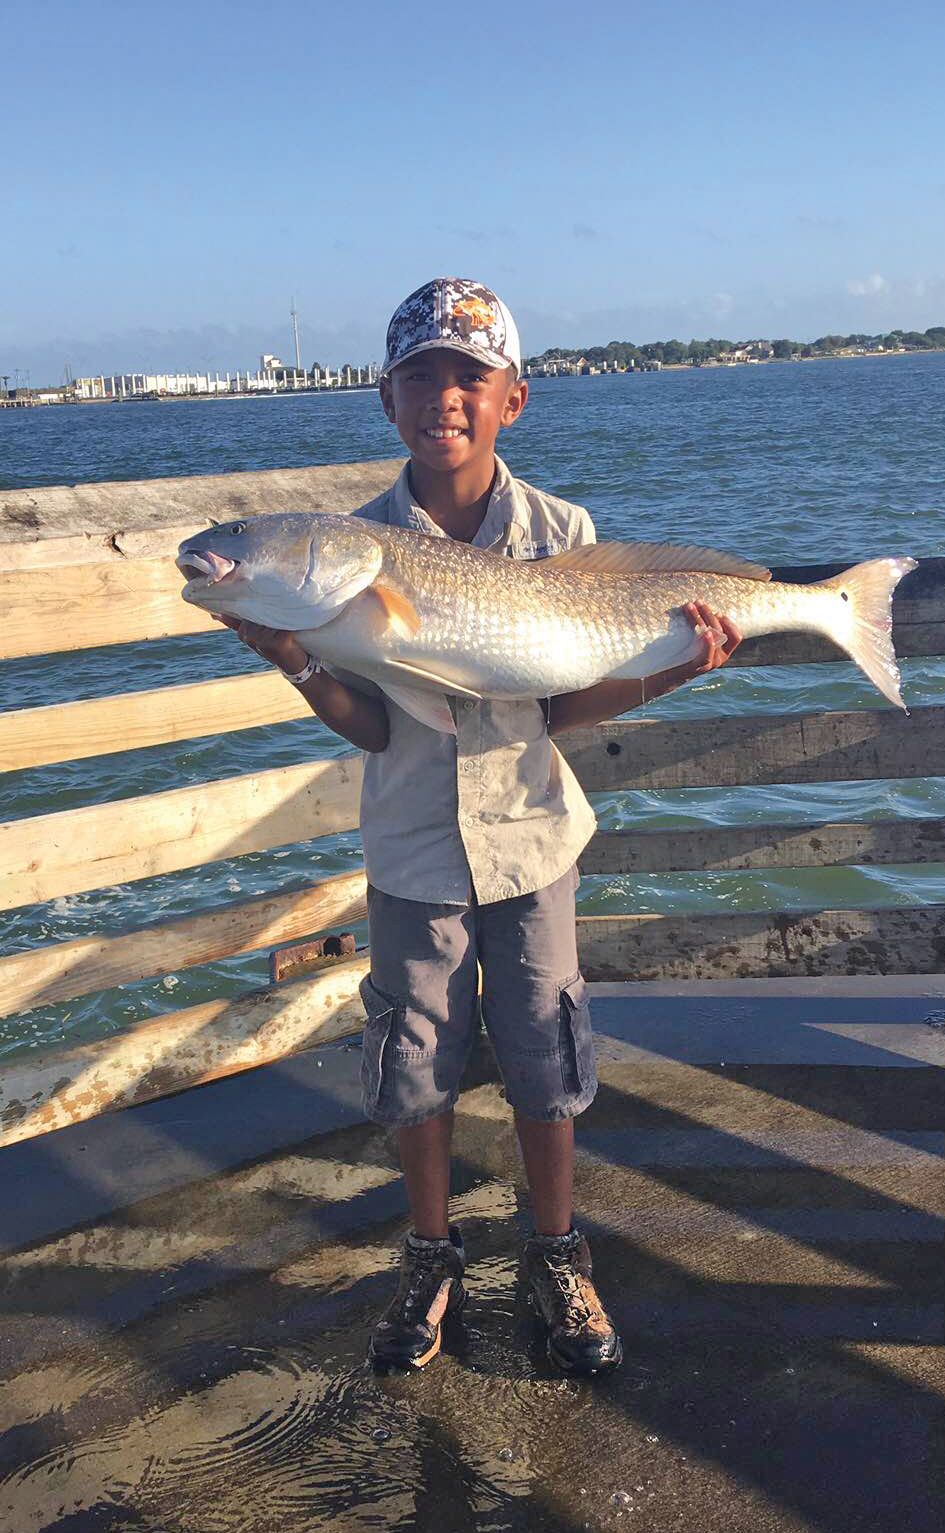 Eight-year-old Aden Viet Johnson with an impressive redfish.